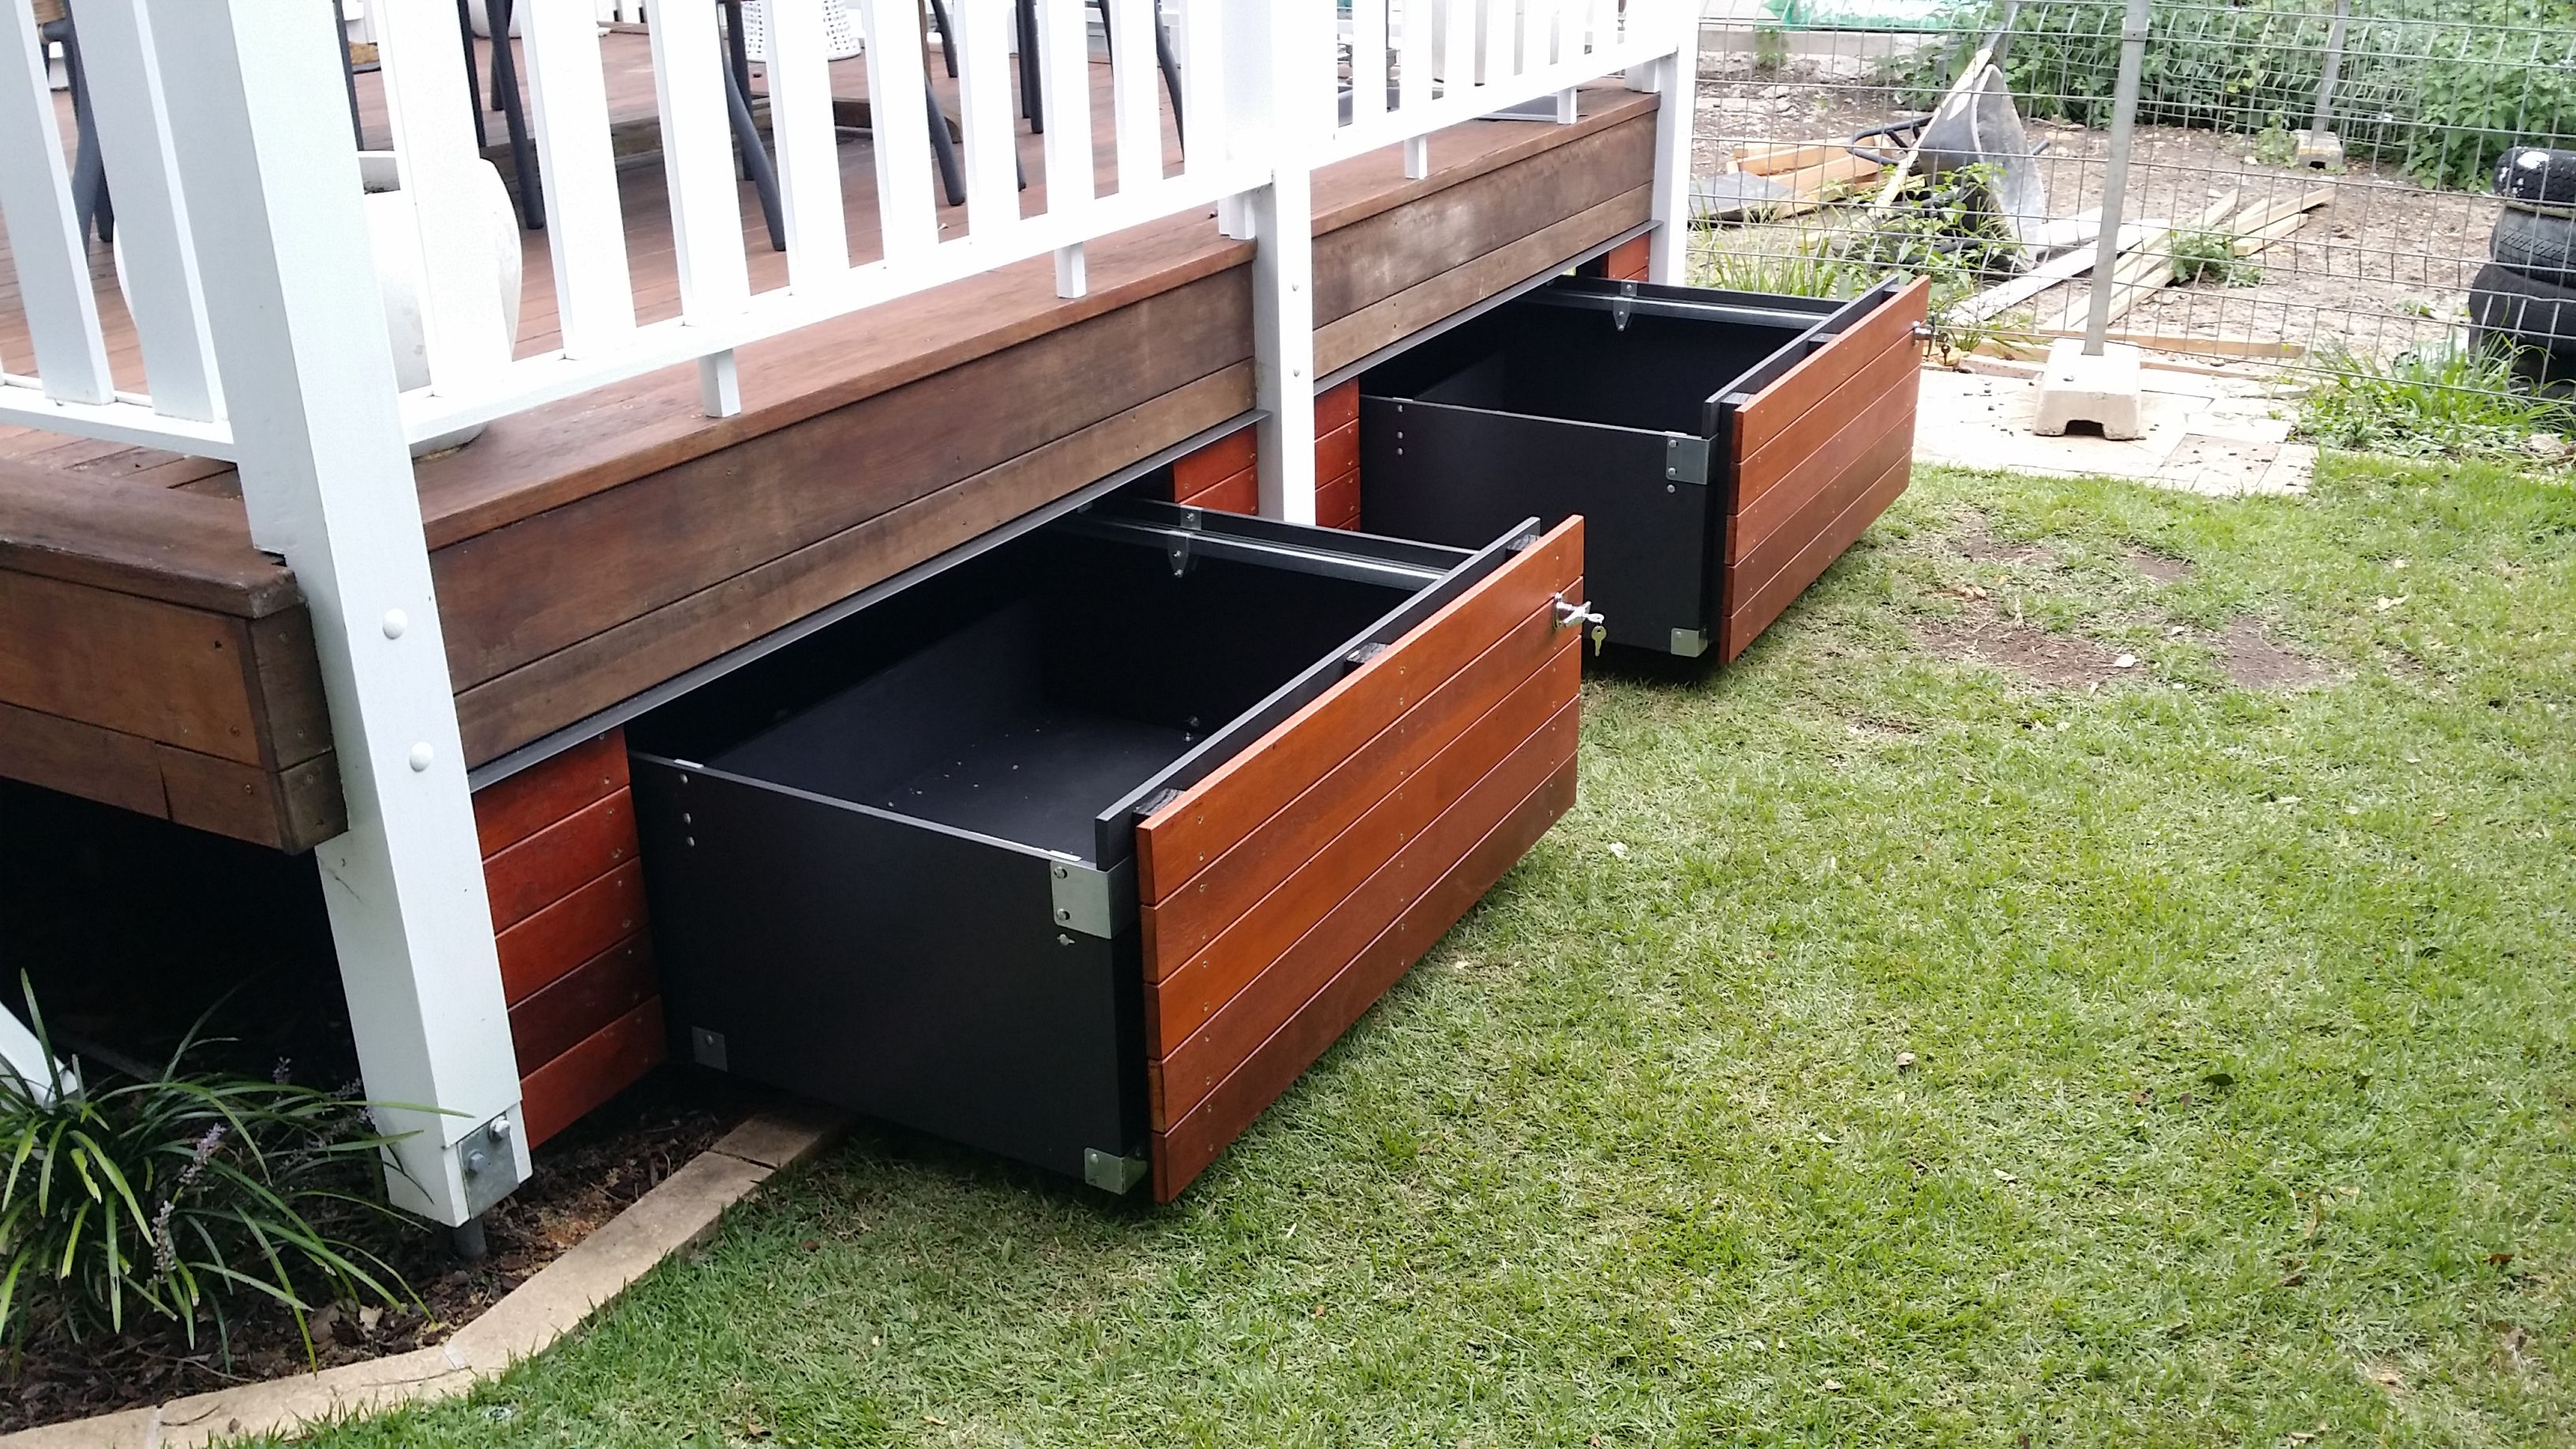 Storage Drawers That Match Your Existing Building Building A Deck Deck Storage Deck Design